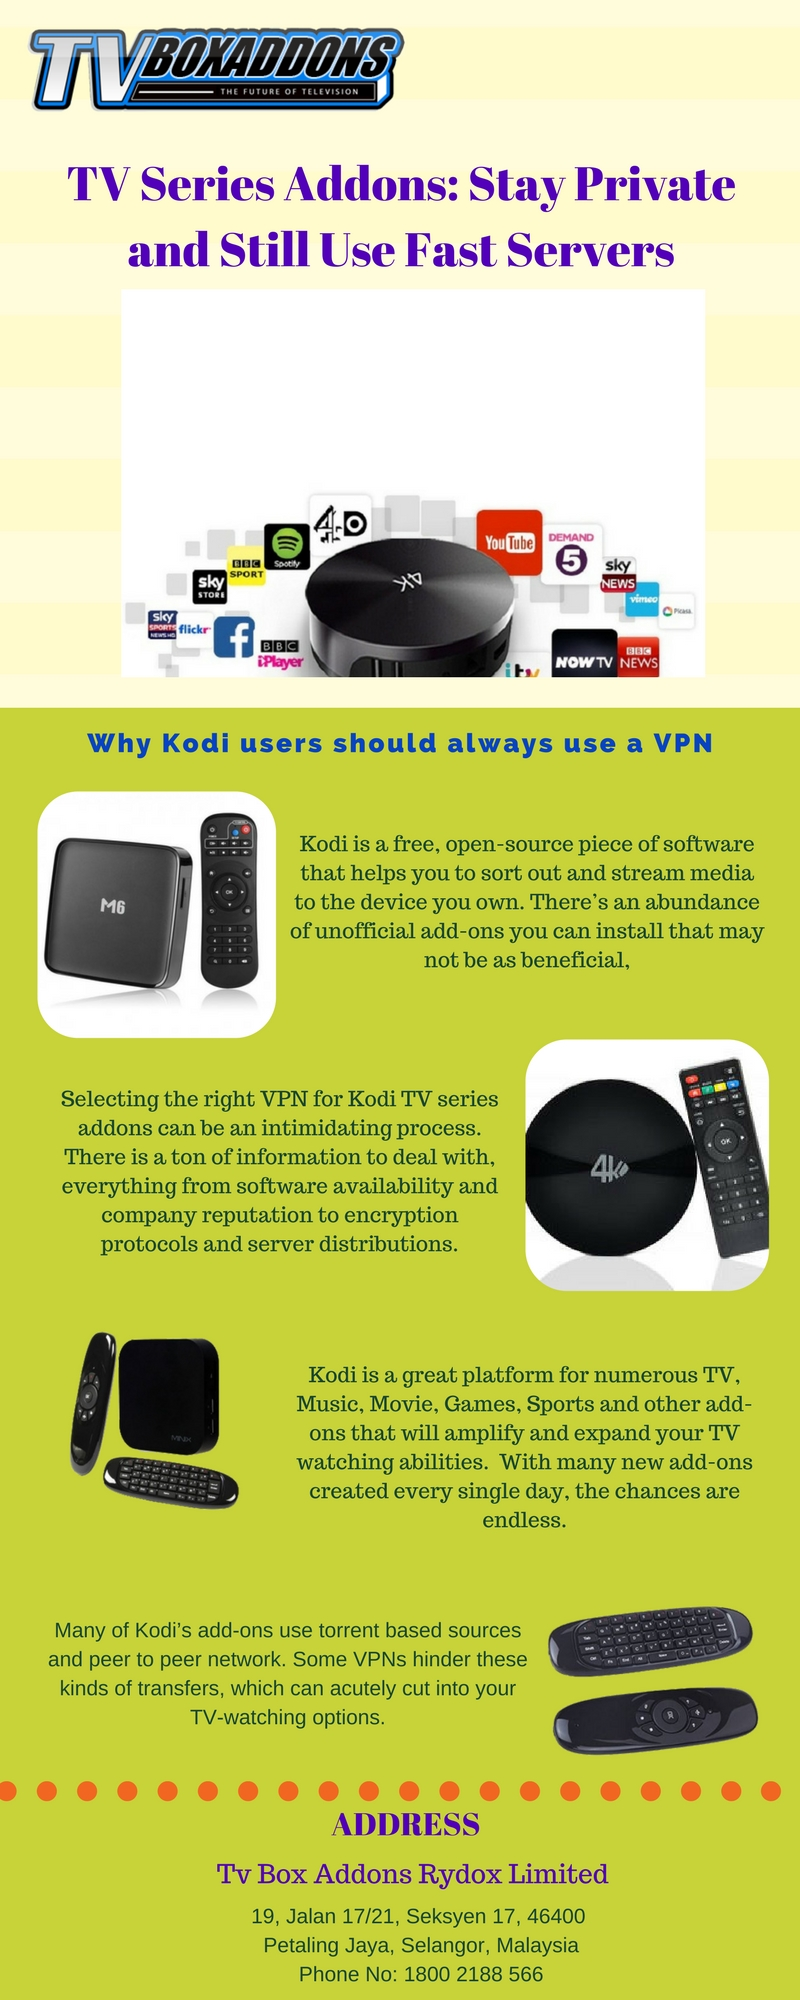 "TV Series Addons Stay Private and Still Use Fast Servers.jpg Kodi TV addons has unveiled their intentions to ""change how people access streaming media forever"". For more details, visit this link: http://tvboxaddons.blogspot.in/2018/04/tv-series-addons-stay-private-and-still.html by tvboxaddons"